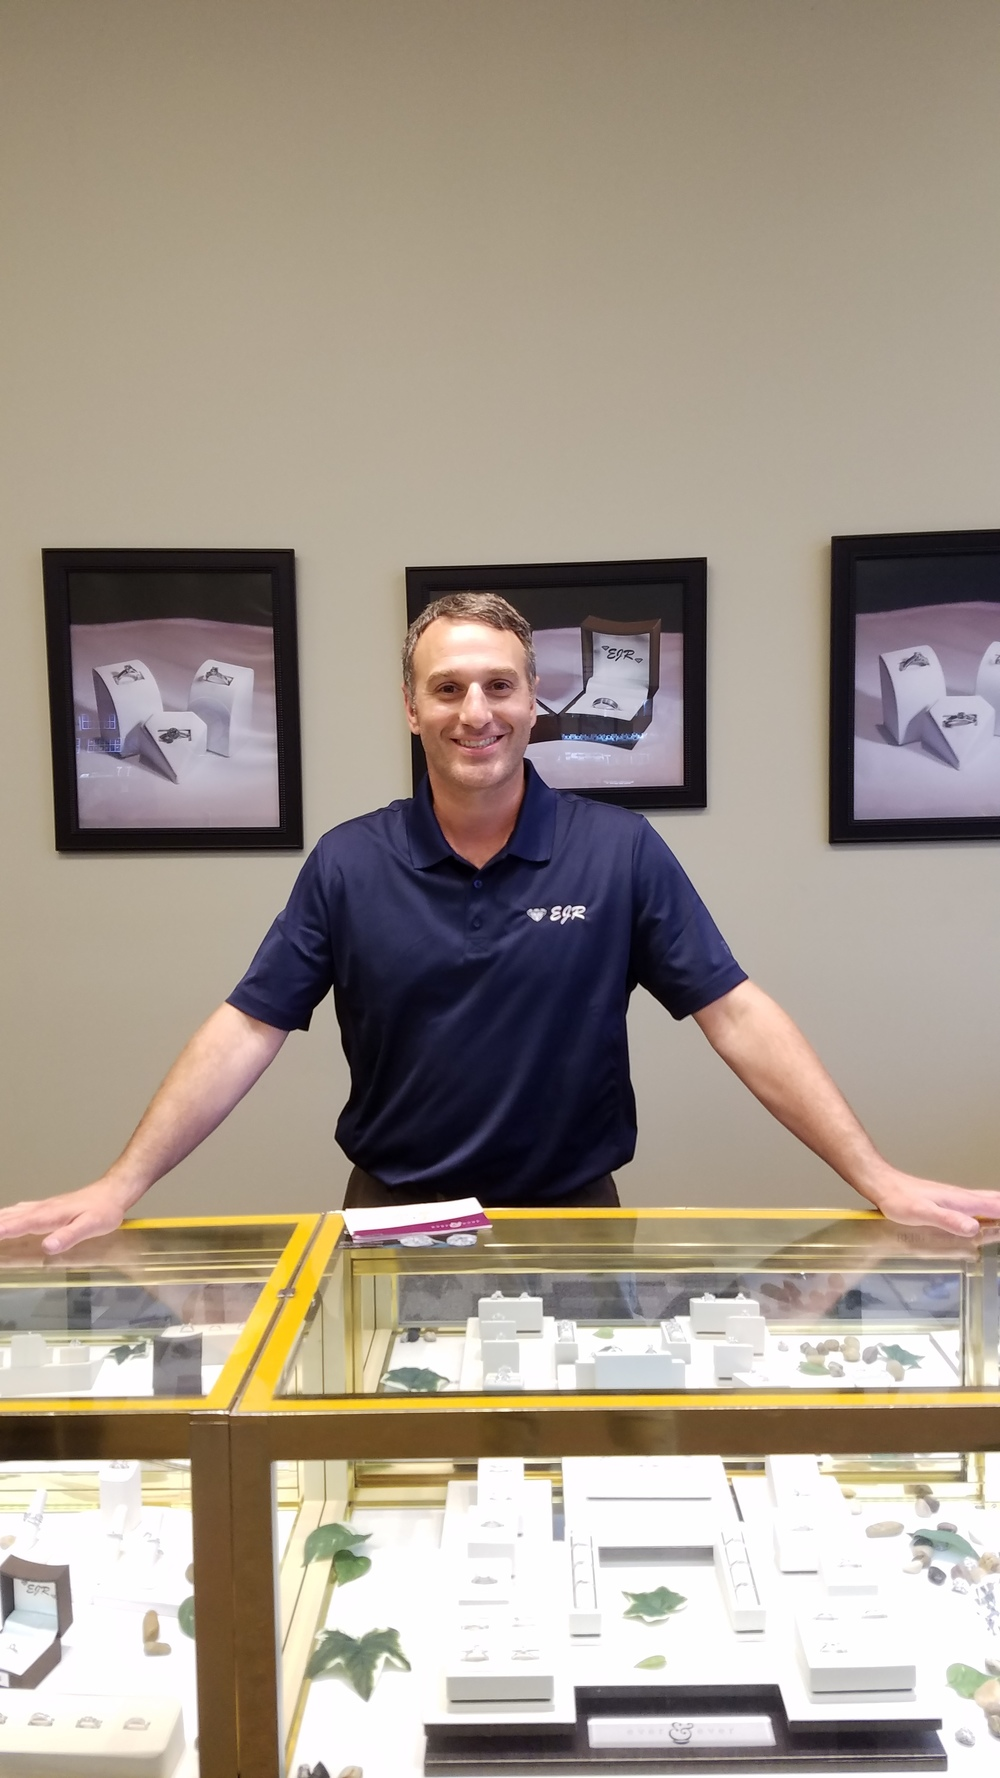 Chris has 18 years experience in the jewelry industry he can help you with all your jewelry needs or even educate you about the finest diamonds and gems.